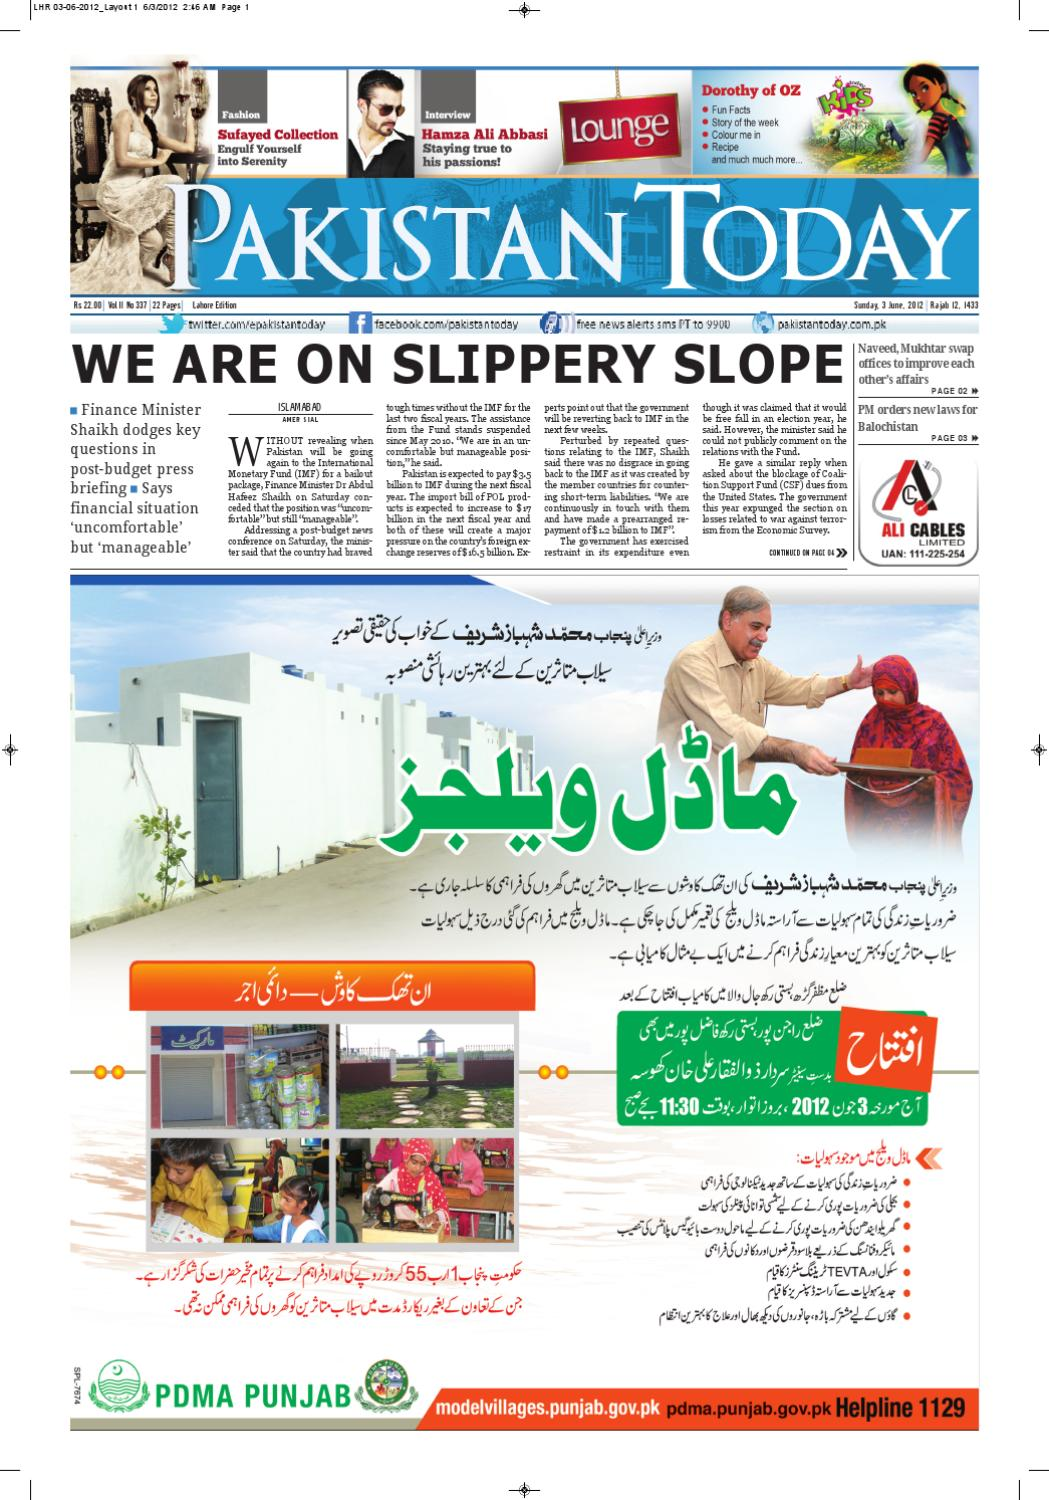 e-paper pakistantoday 03rd june, 2012 by Pakistan Today - issuu